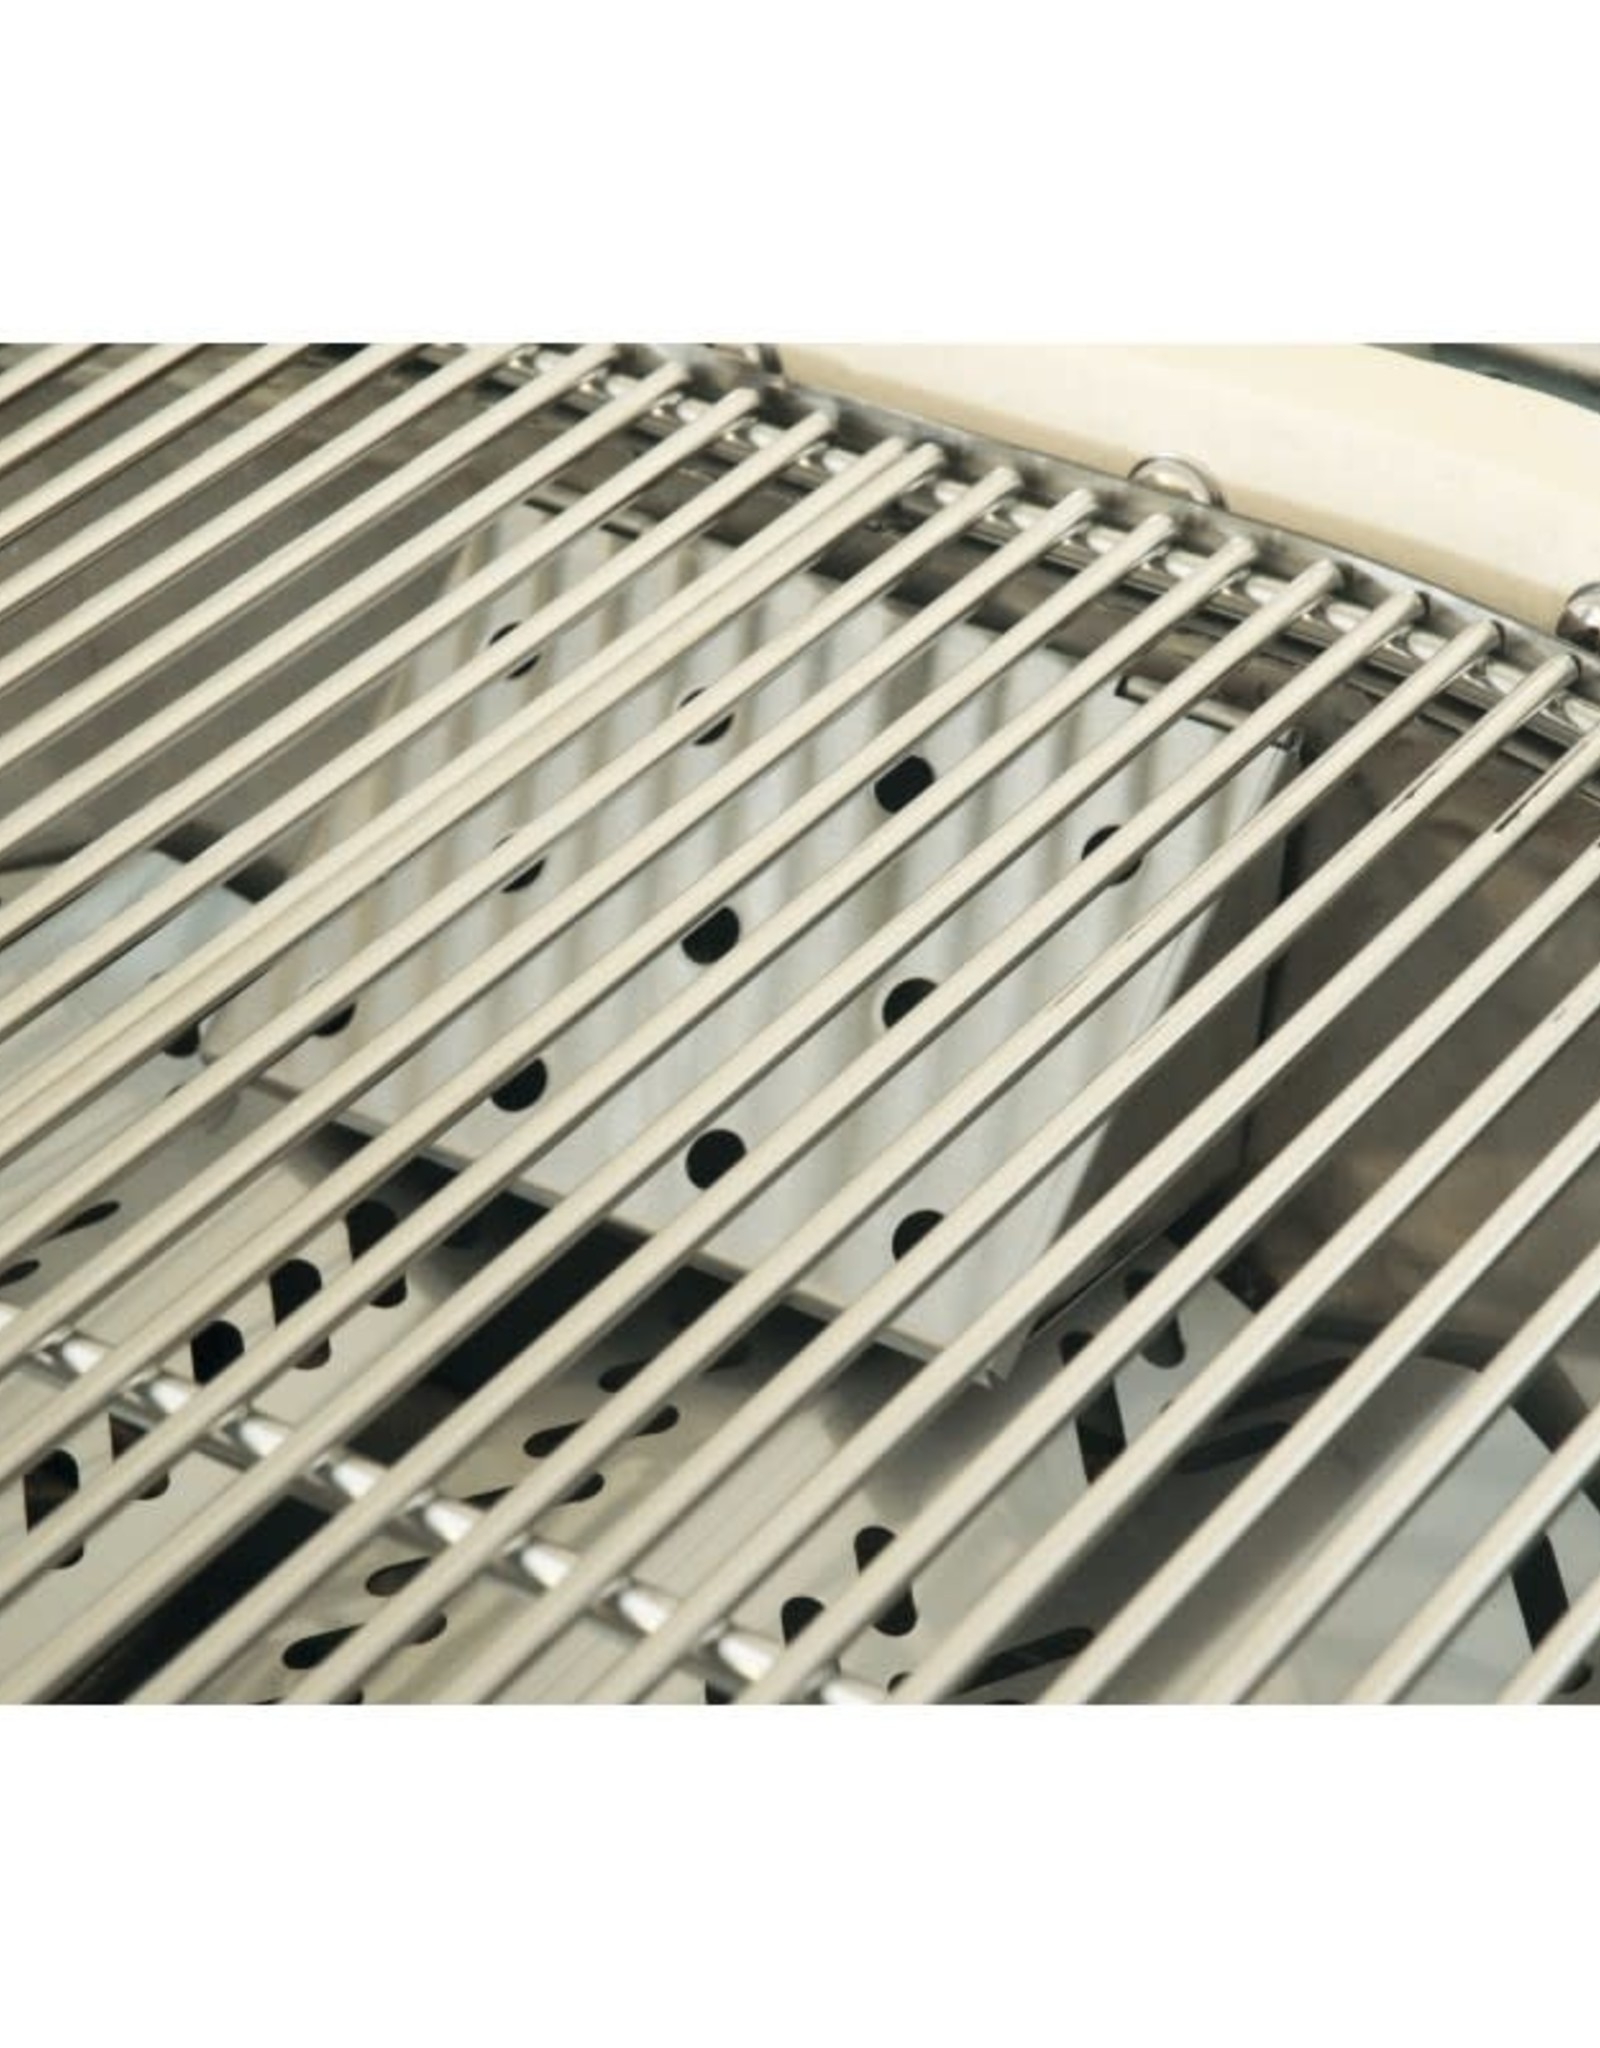 Primo Ceramic Grills Primo Oval G420 Head Only Gas Built-In Ceramic Gas Kamado Grill, Natural Gas, 36-Inchill